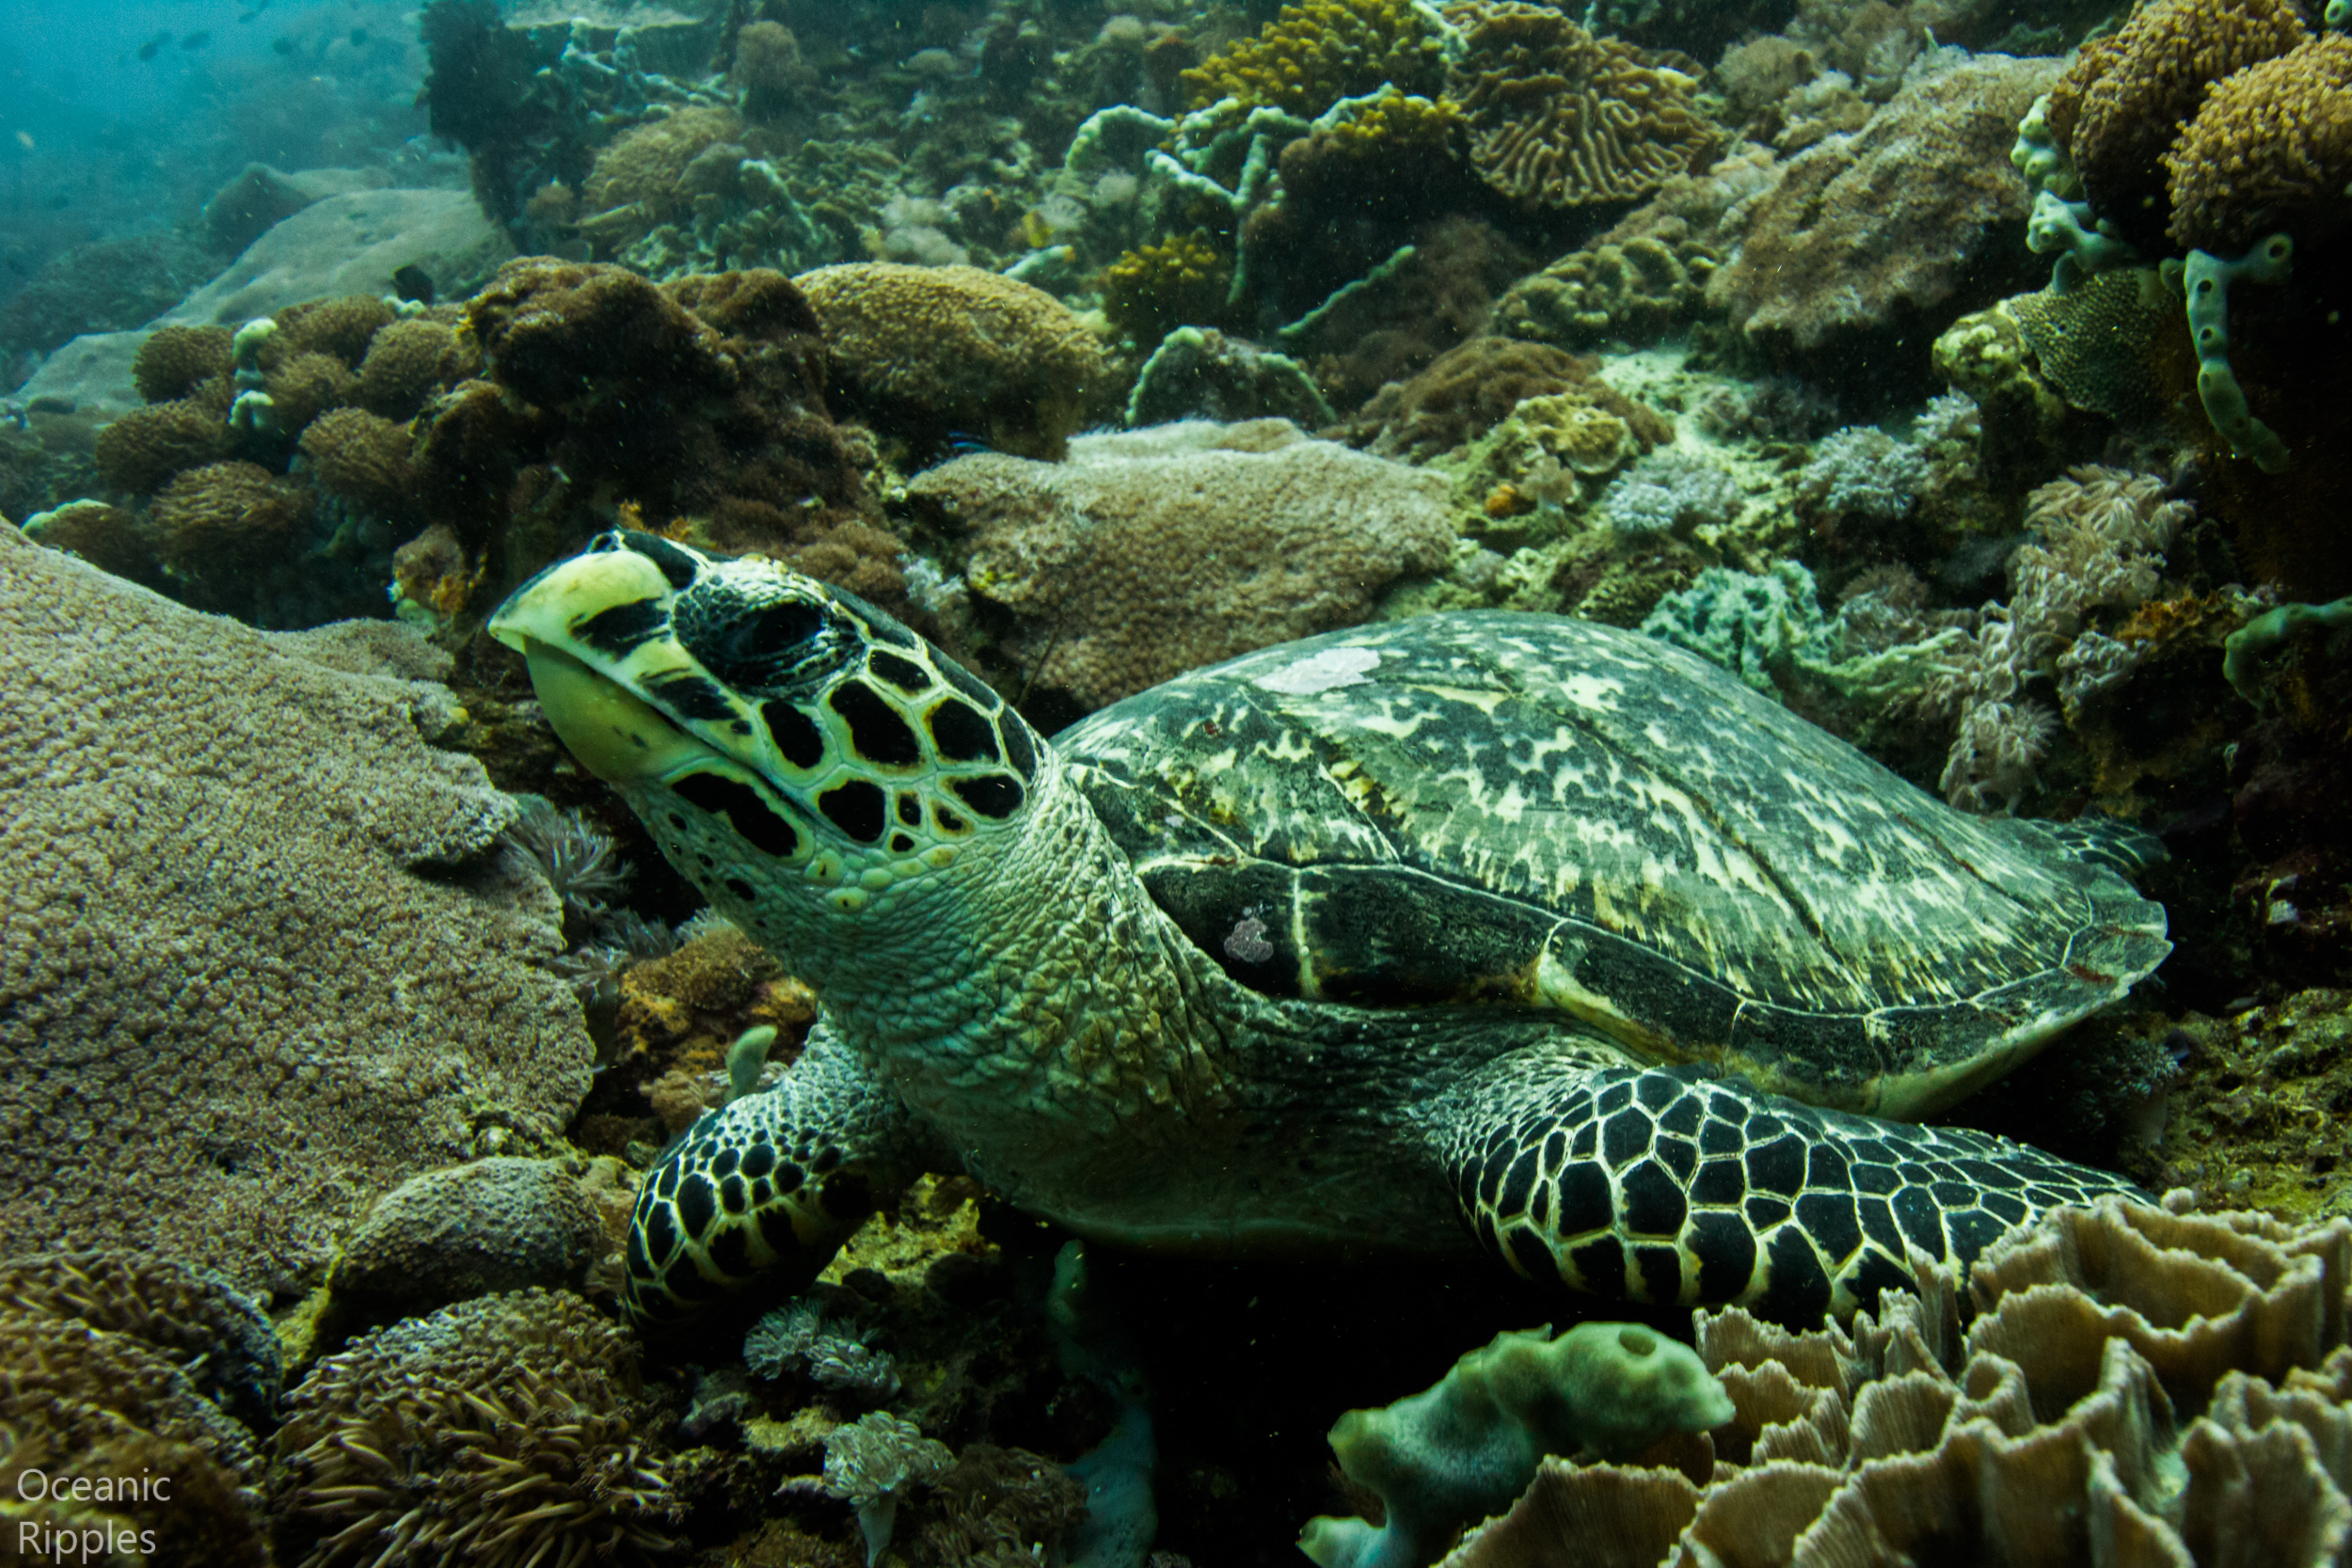 Copy of Turtle Underwater at Bali